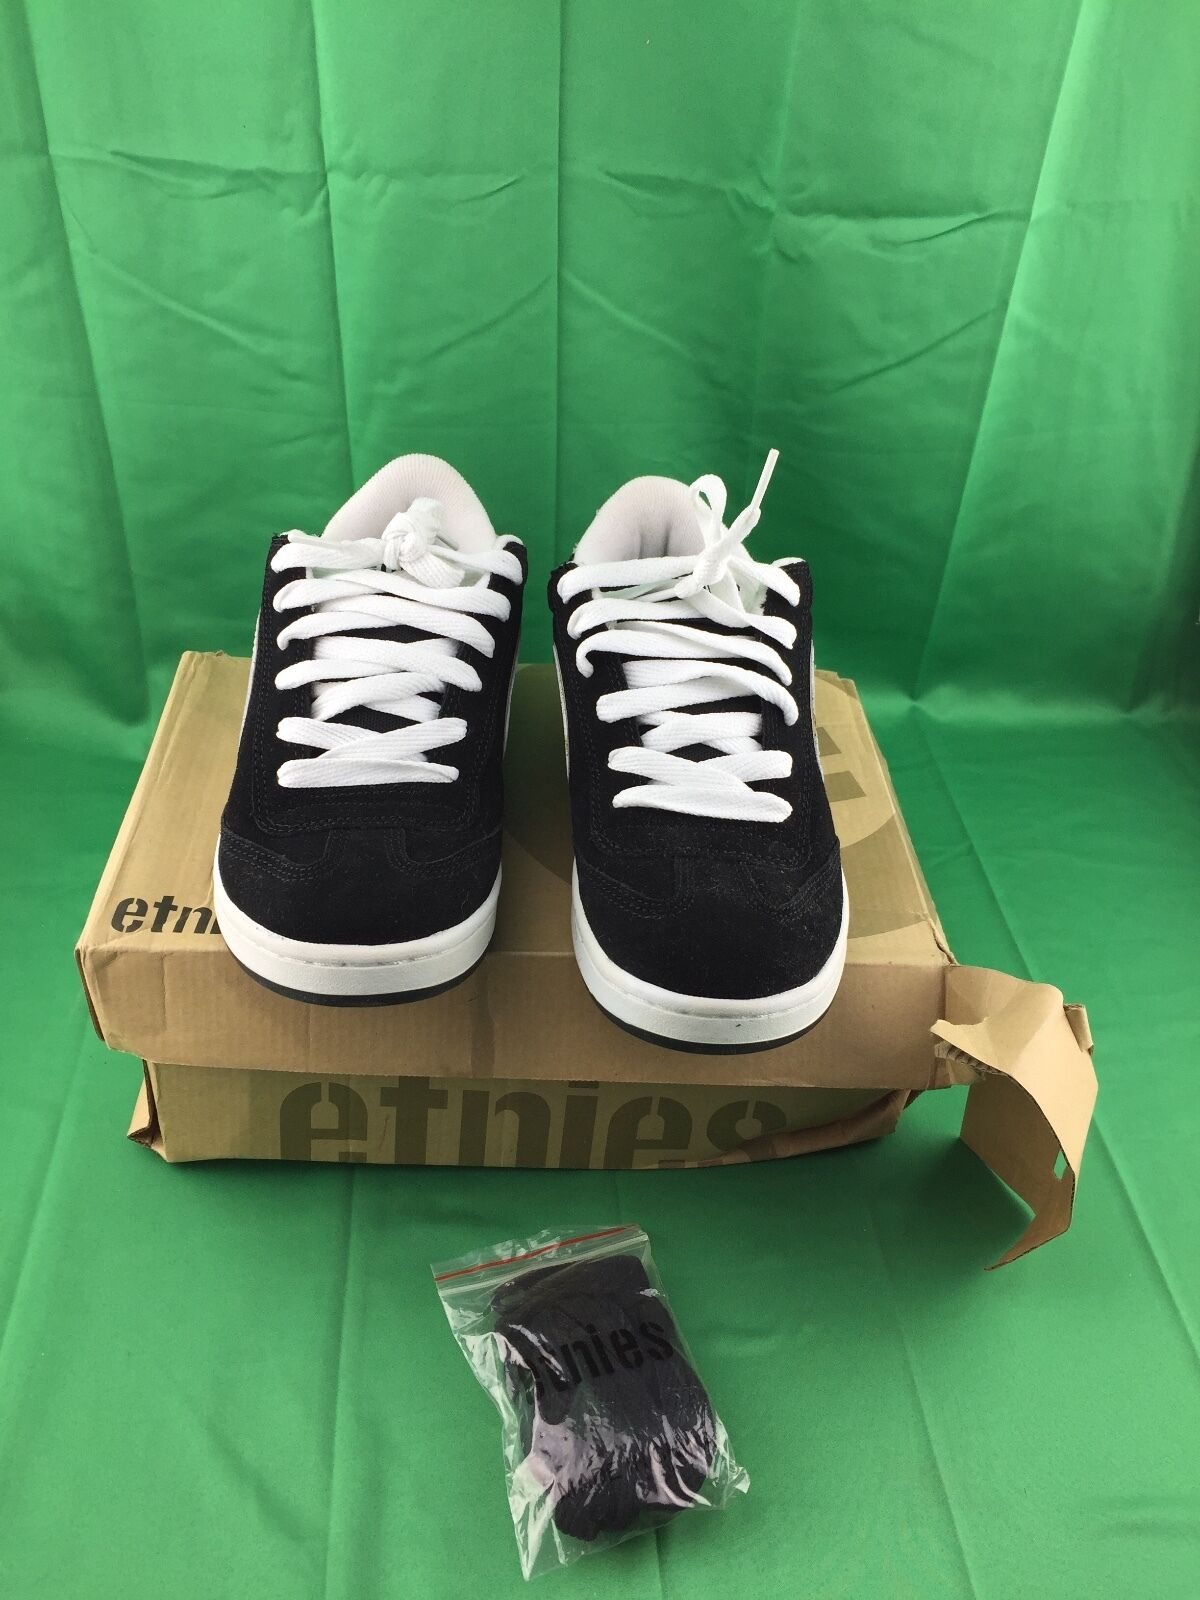 1c308afd4b78 ETNIES Skate Shoes LO-CUT BLACK WHITE (READ DESCRIPTION) 8bd850 ...